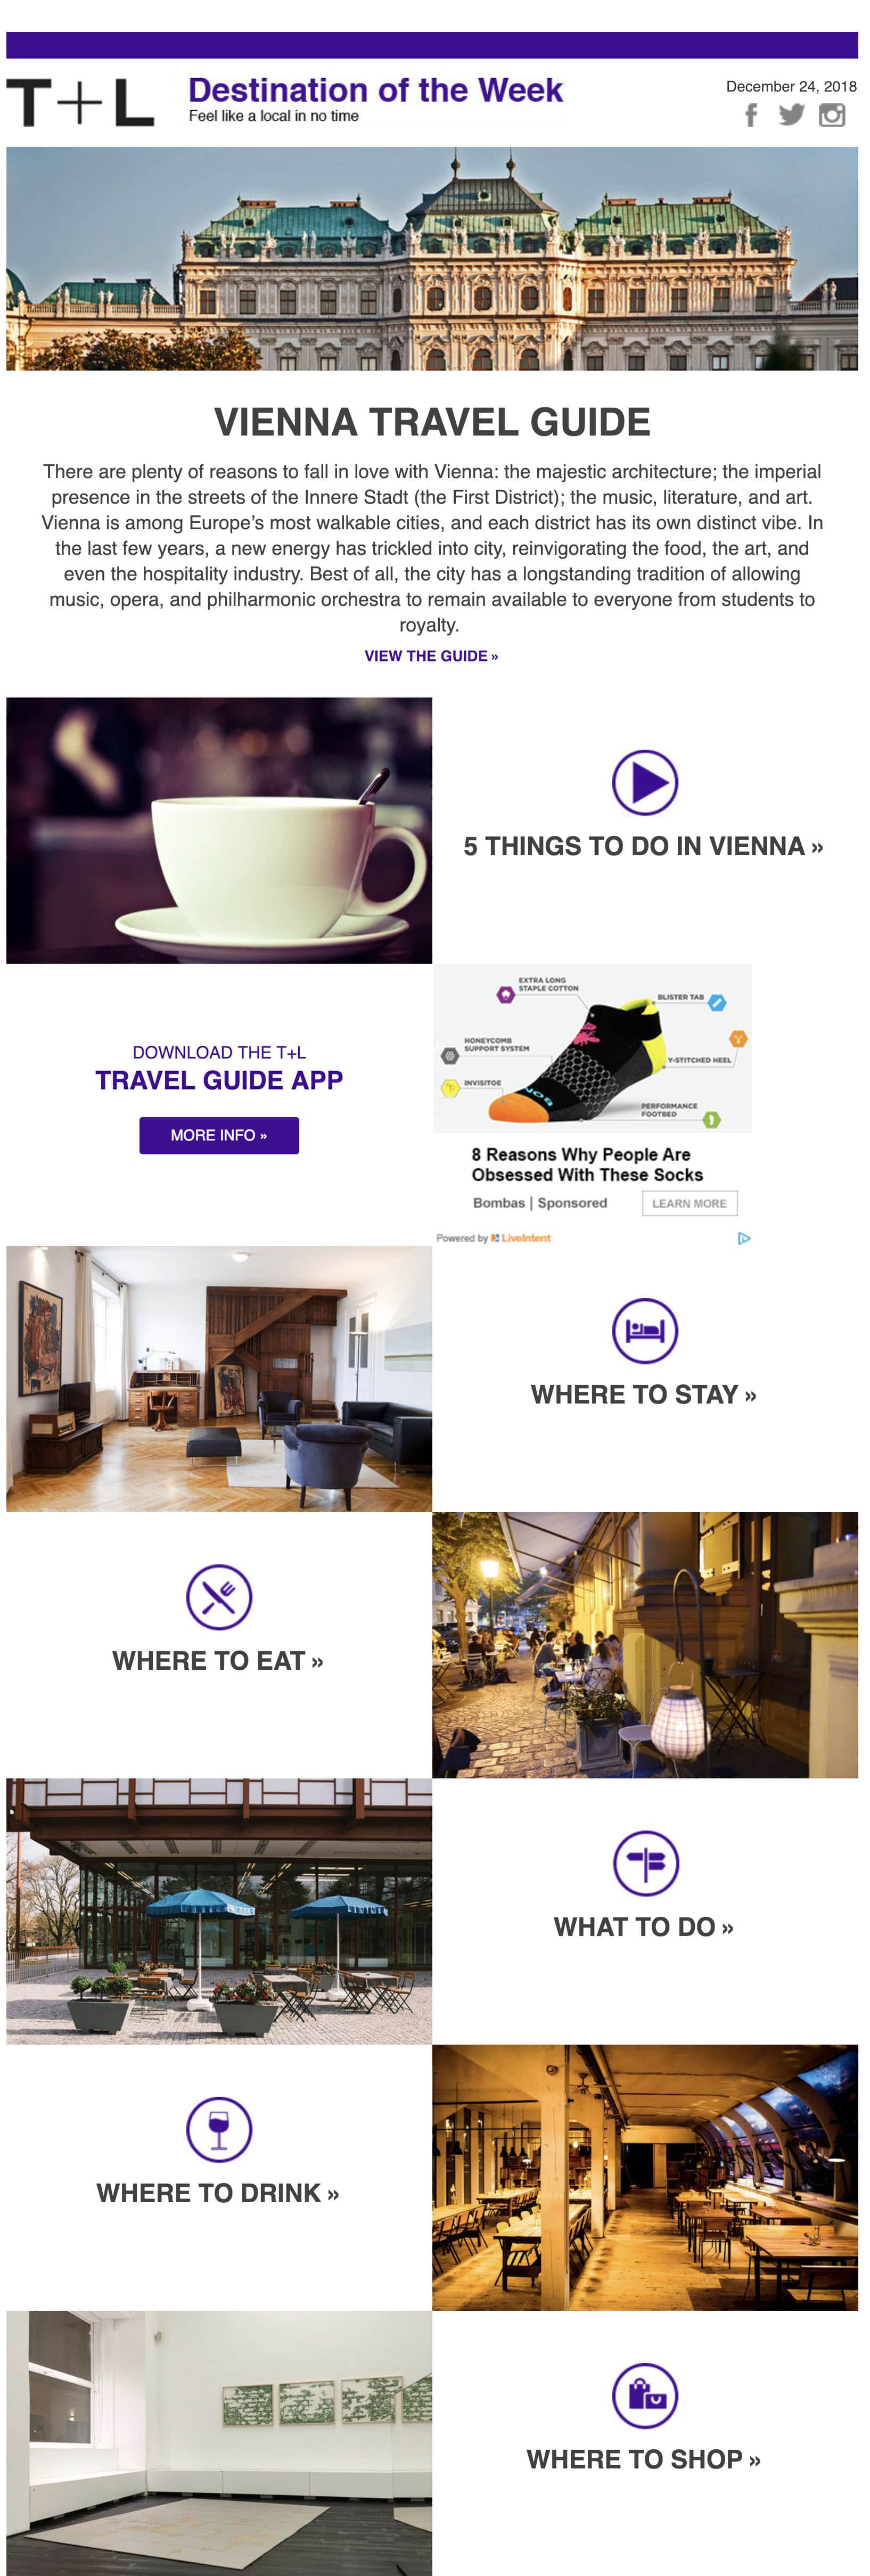 Travel + Leisure email